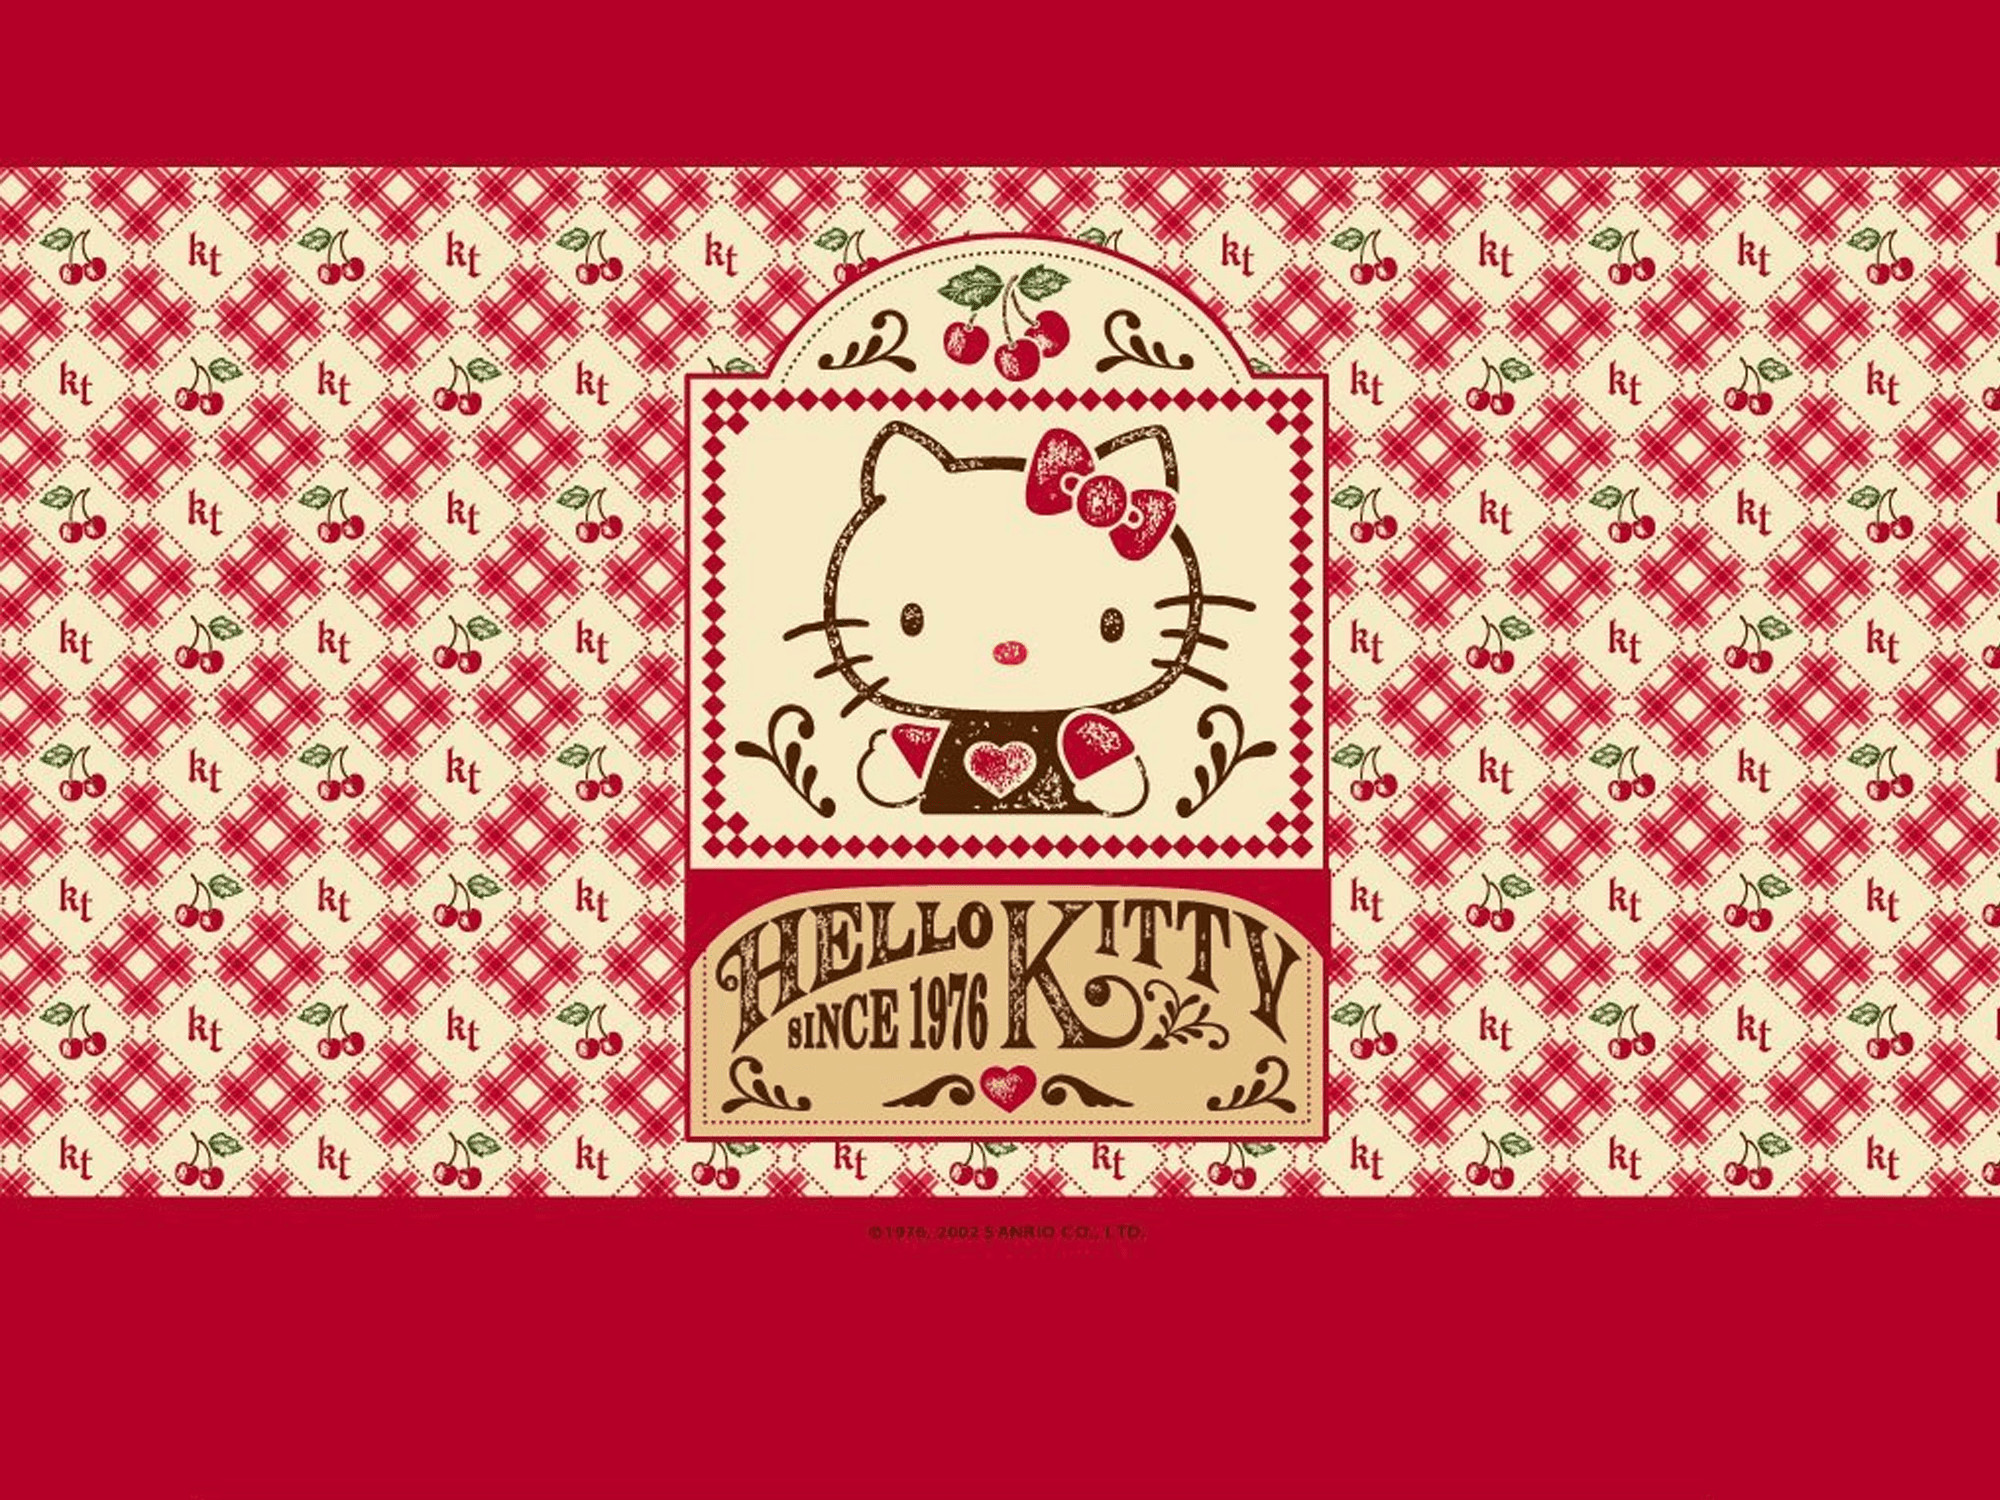 2000x1500 Screenshot of a red and brown vintage Hello Kitty wallpaper